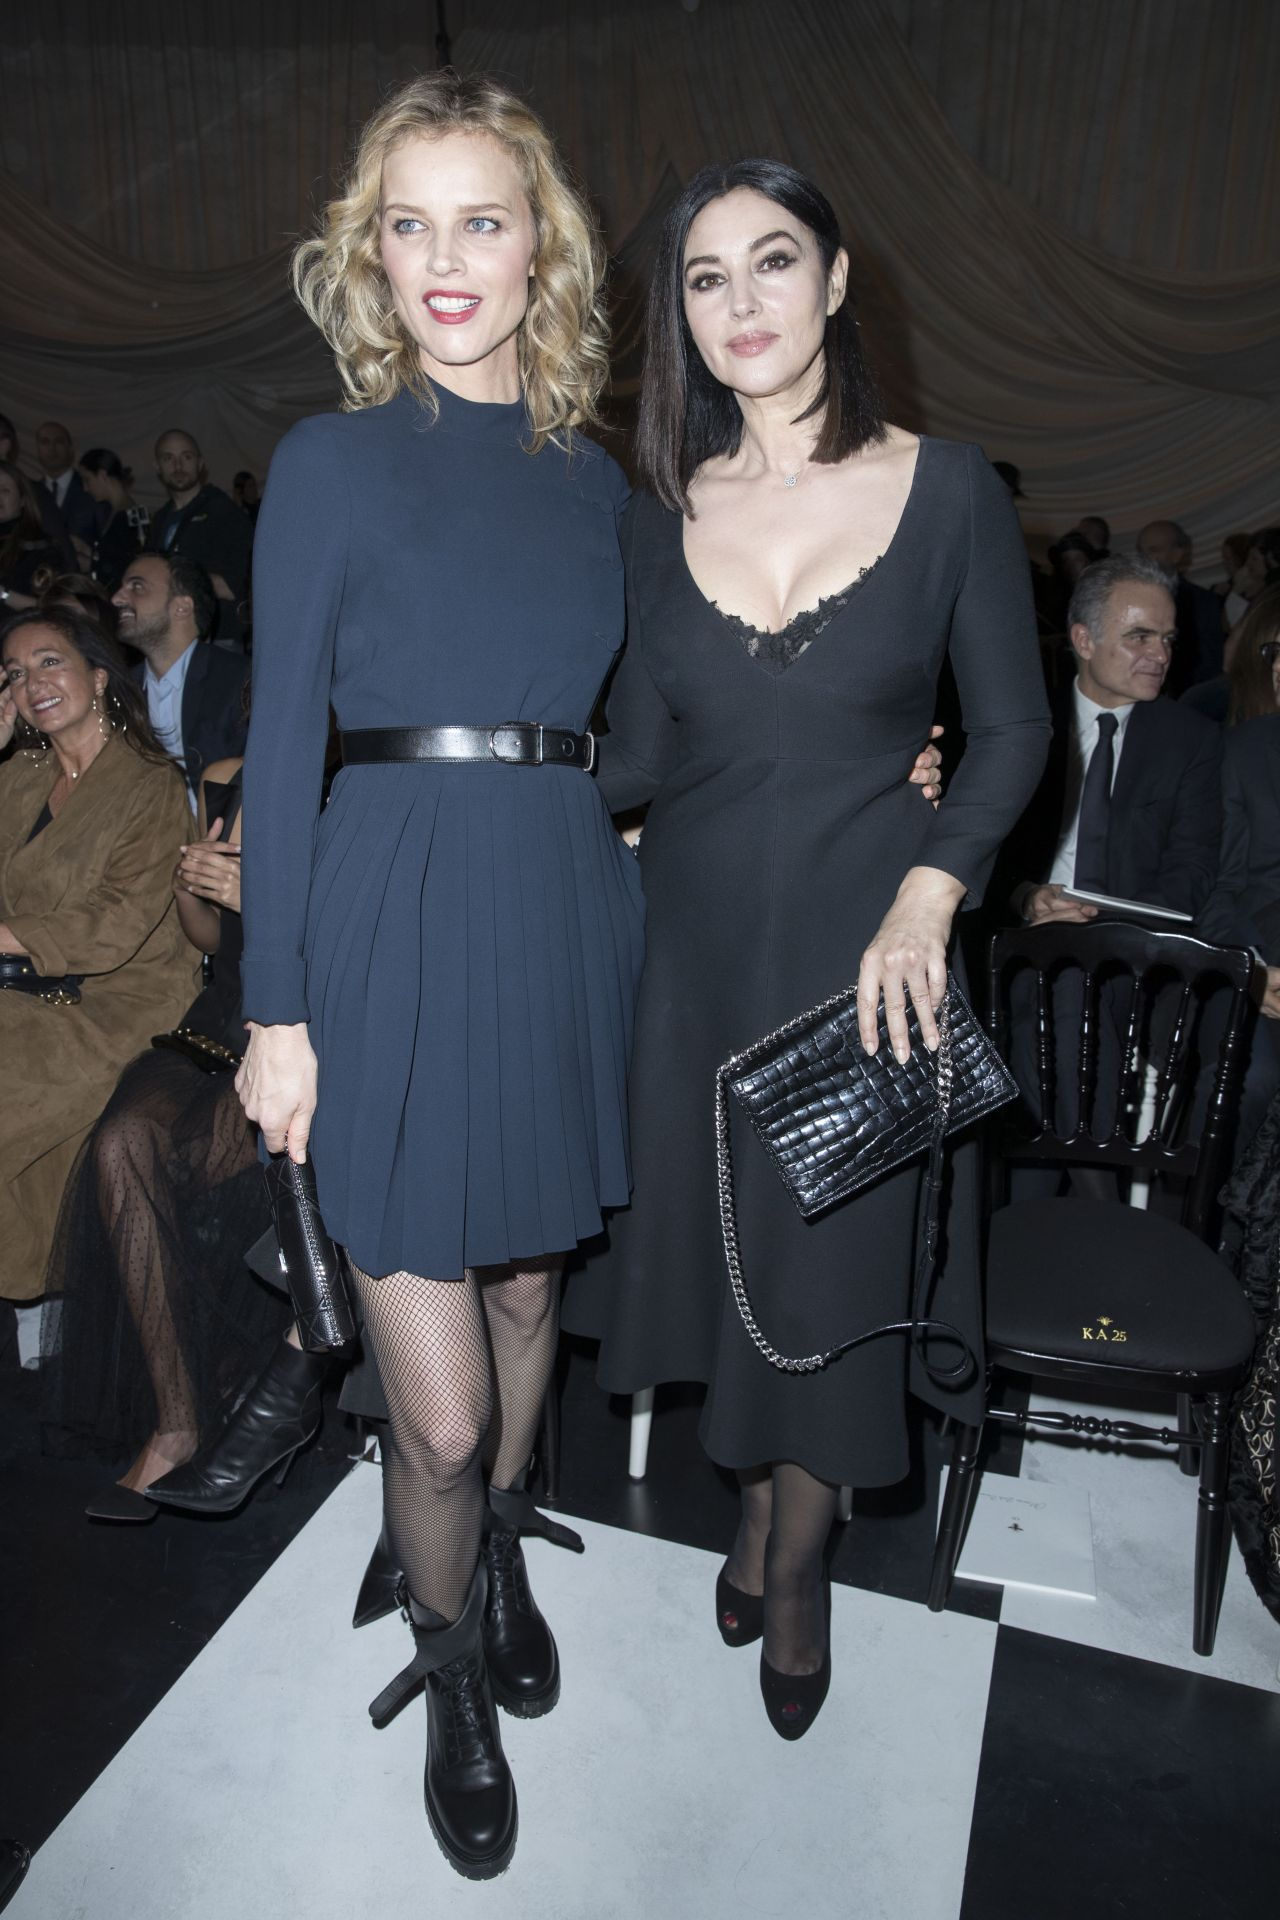 Monica Bellucci Christian Dior Fashion Show In Paris 01